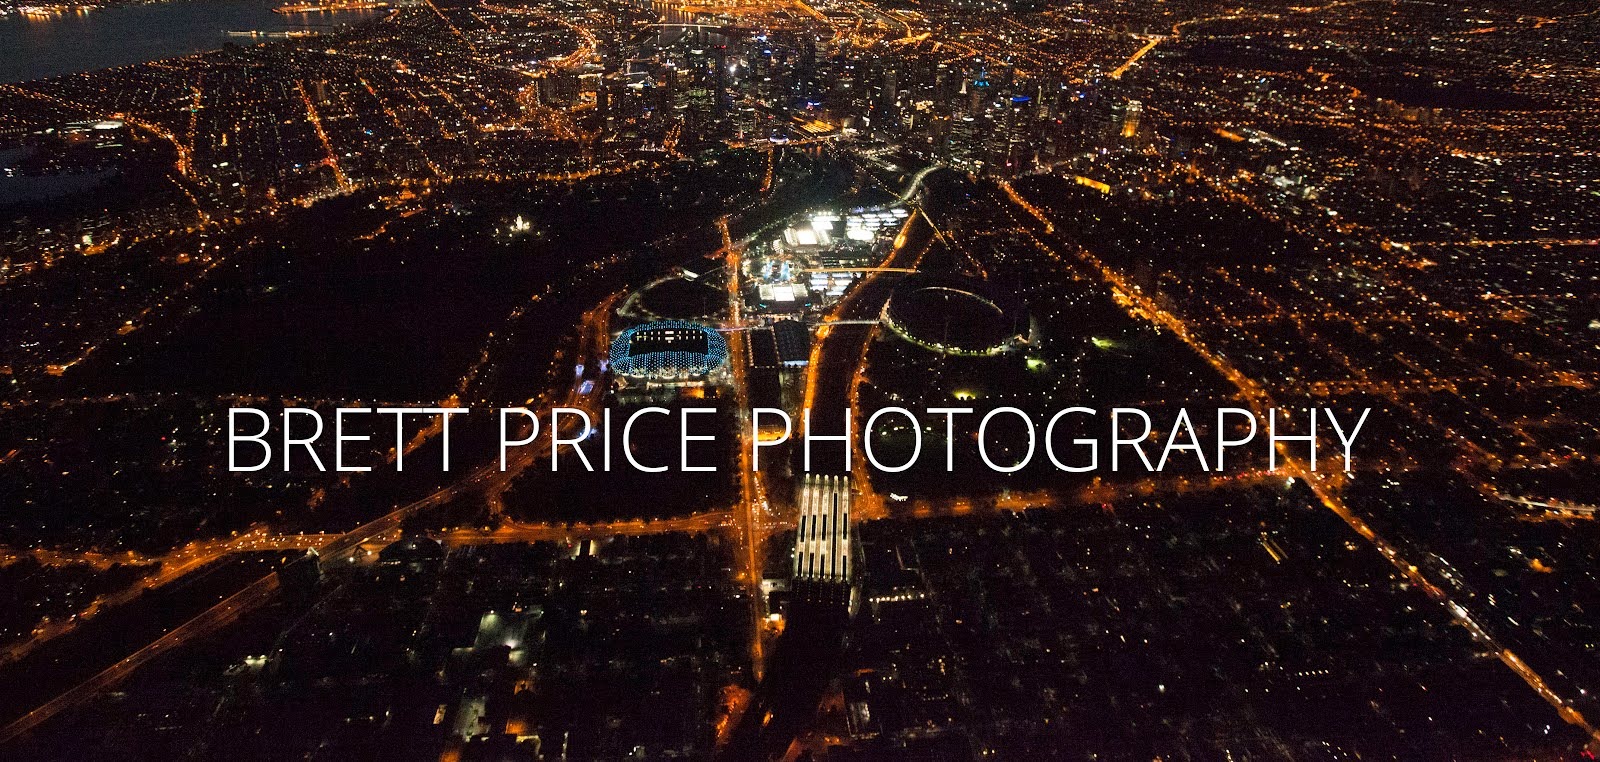 Brett Price Photography